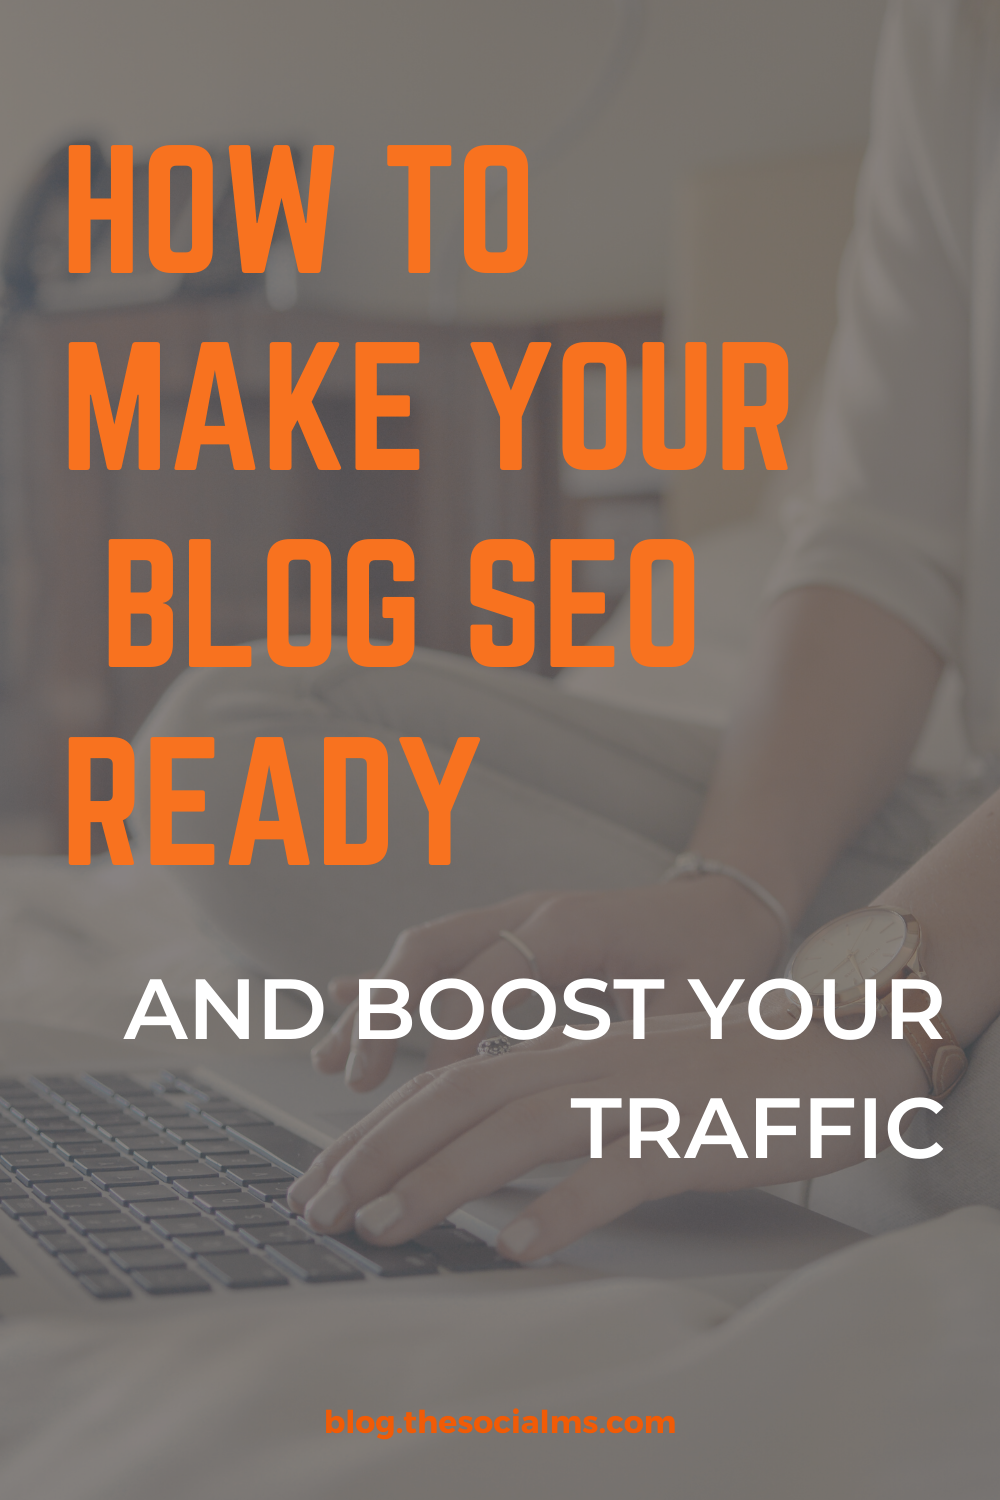 Is your blog really ready for SEO? Sure, you are running WordPress – but did you install all the stuff you need for SEO? All the plugins, online tools, and site upgrades? Here is your guide to set up your blog for SEO. #seo #searchengineoptimization #blogtraffic#trafficgeneration #bloggingtips #blogging101